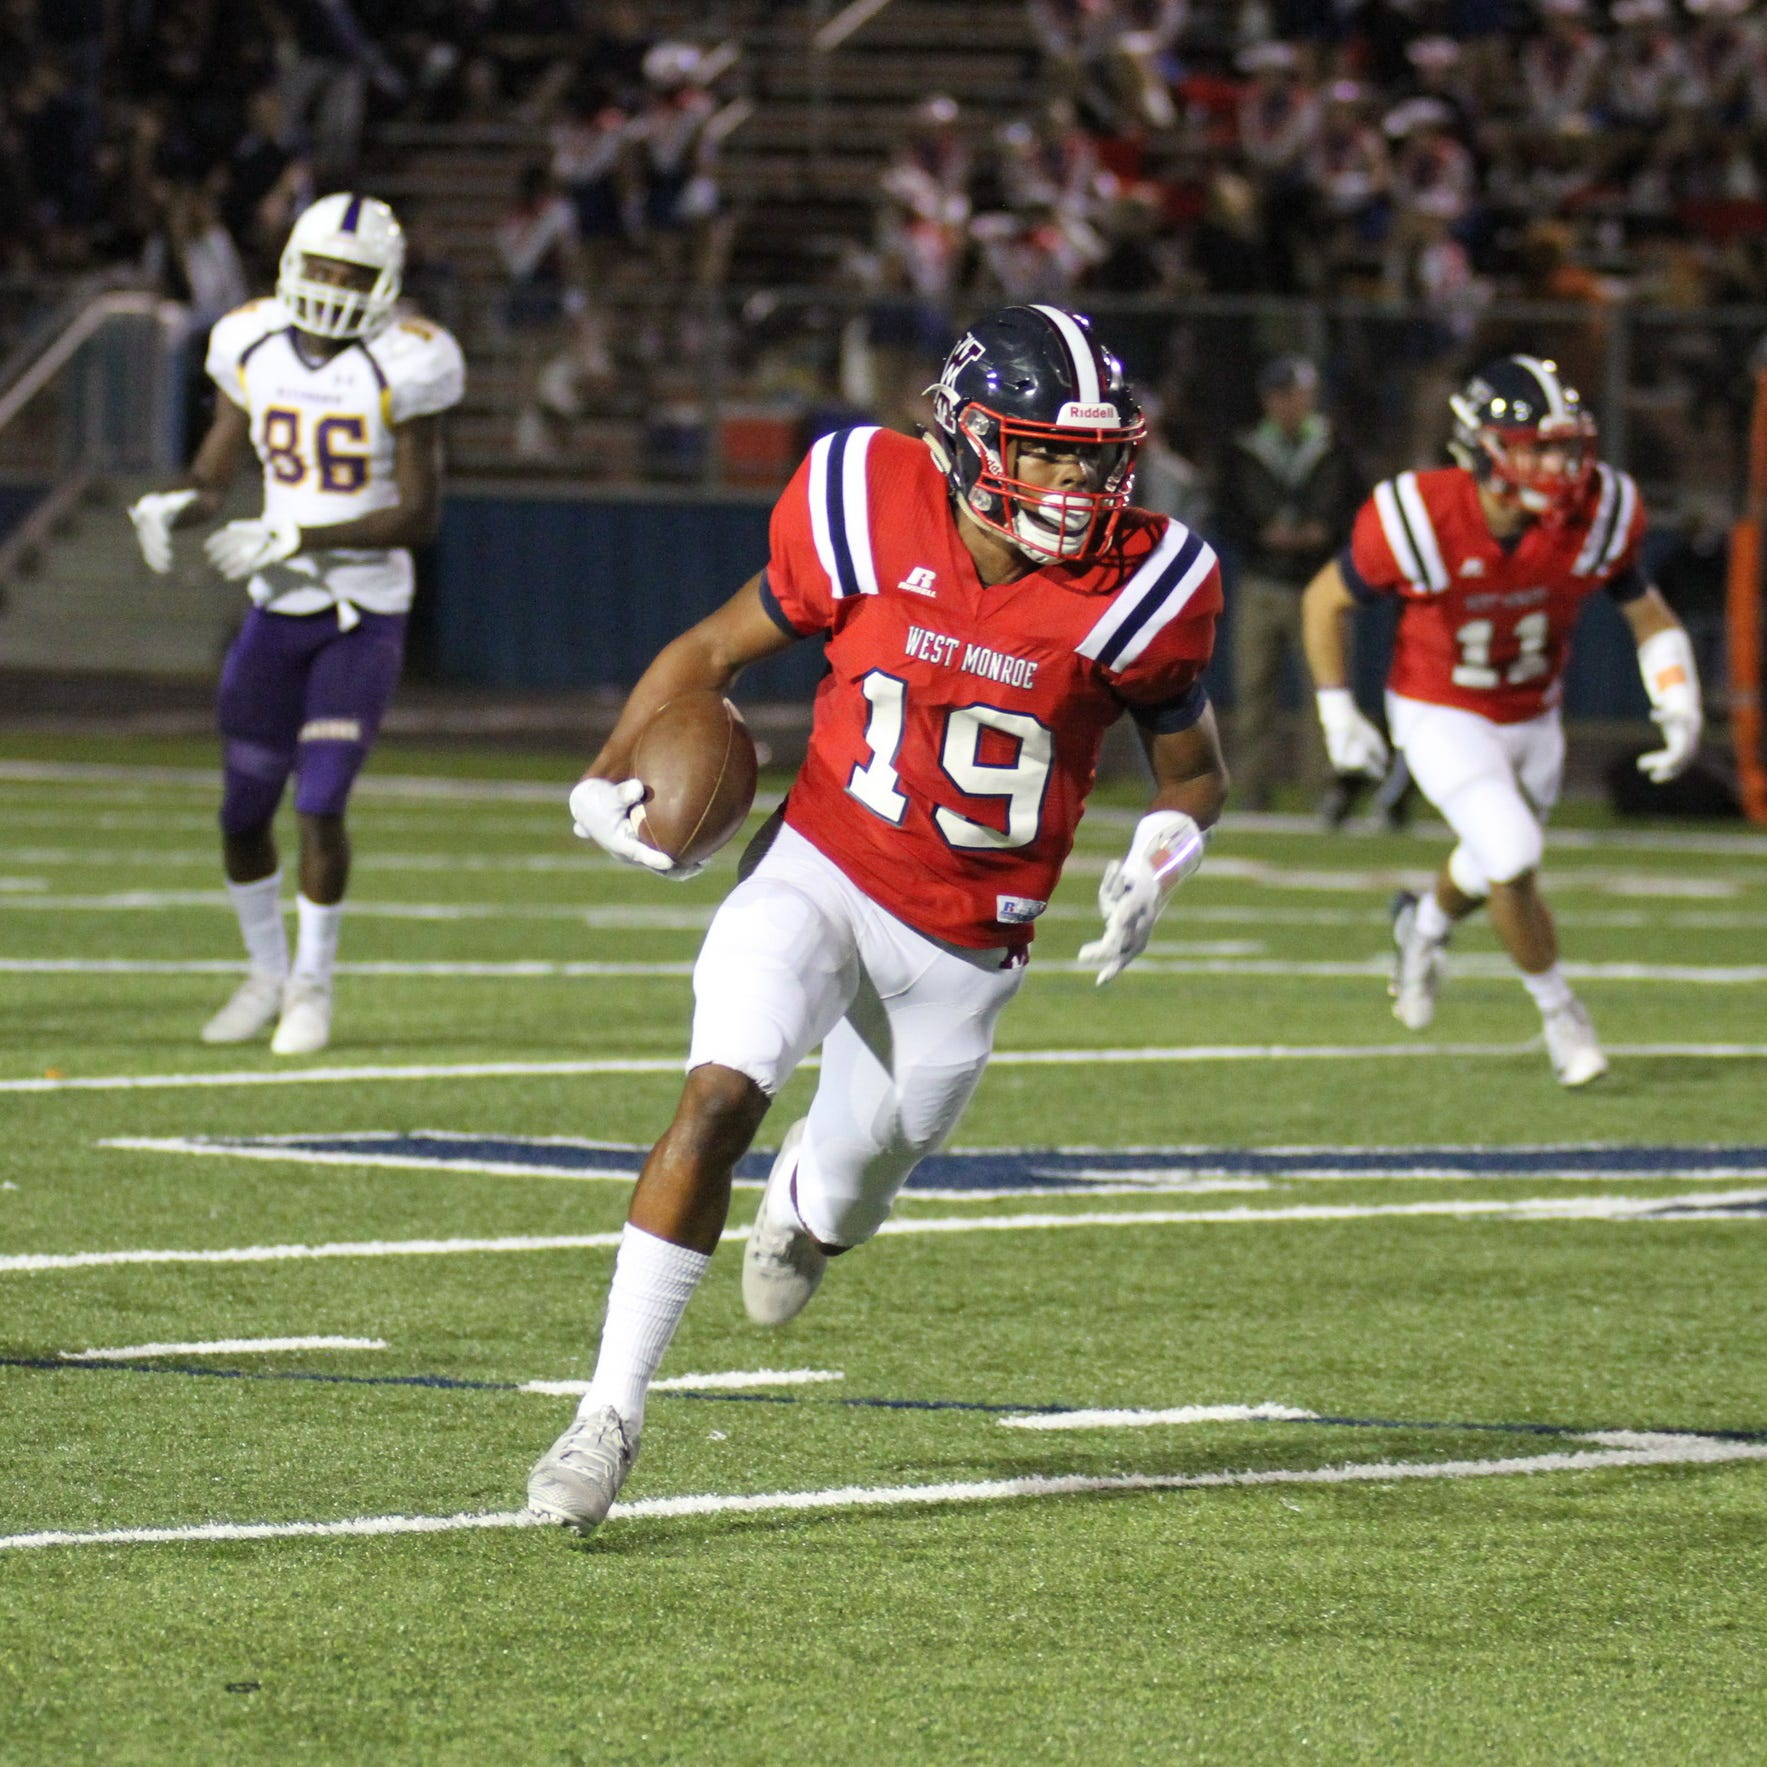 West Monroe bullies district foe Alexandria in battle of unbeatens